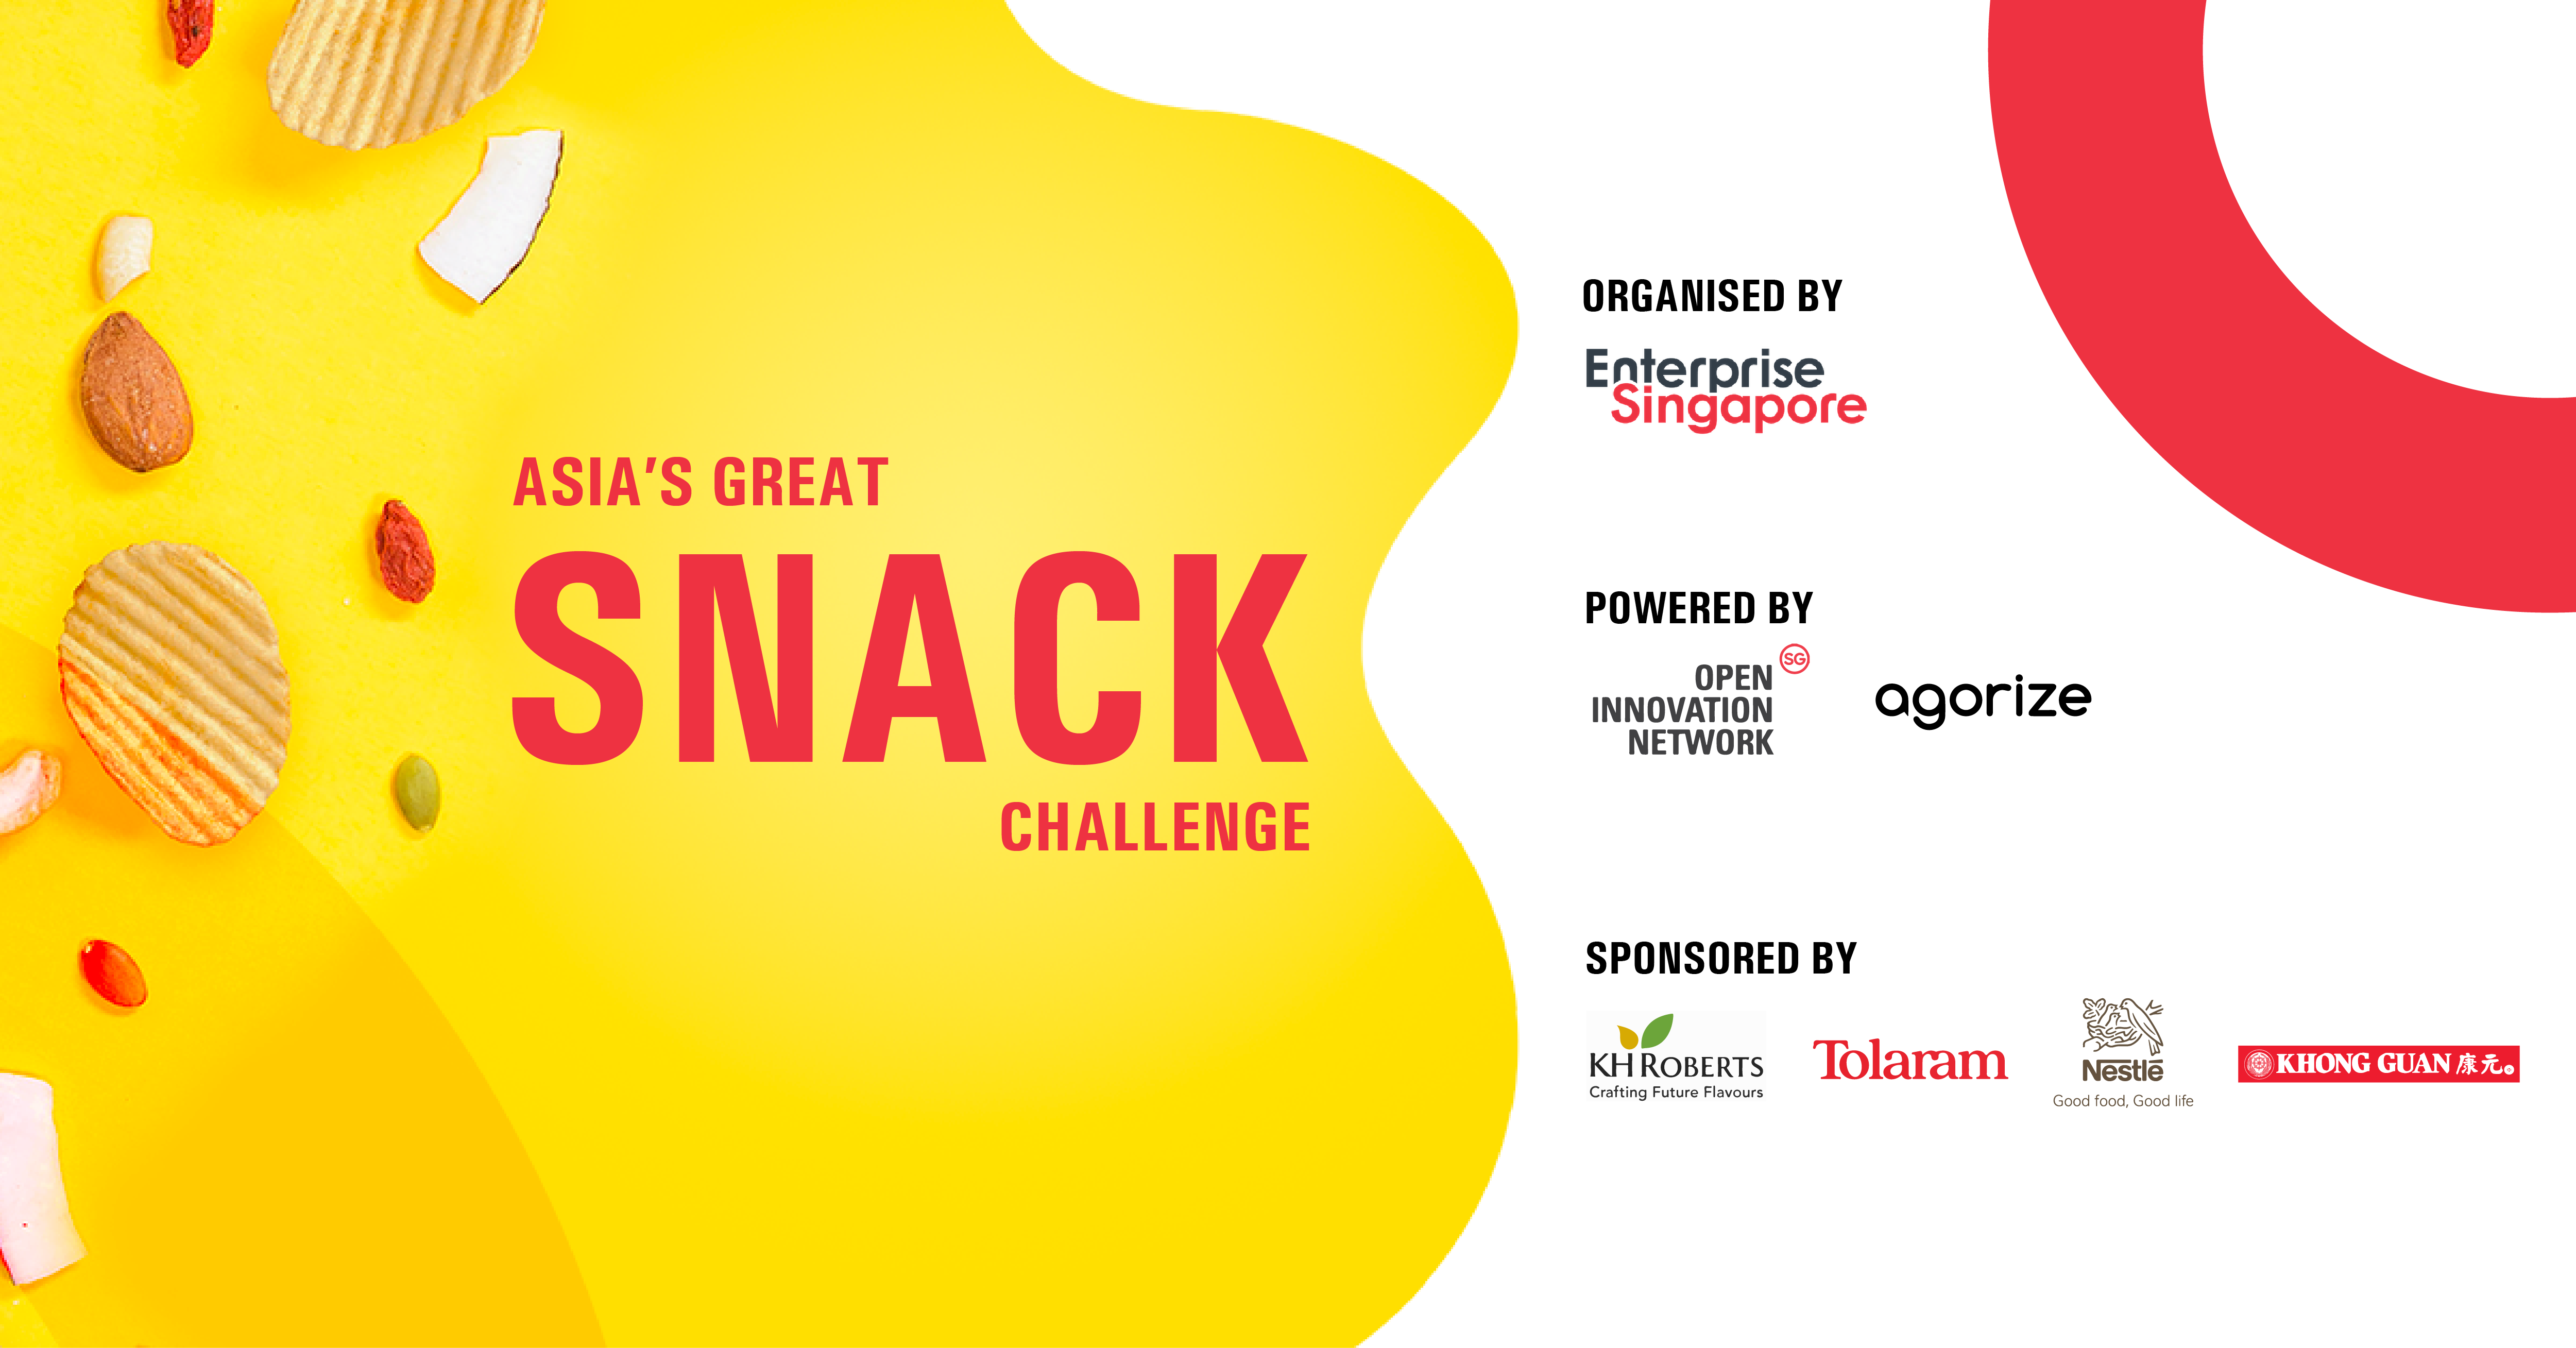 Asia's Great Snack Challenge